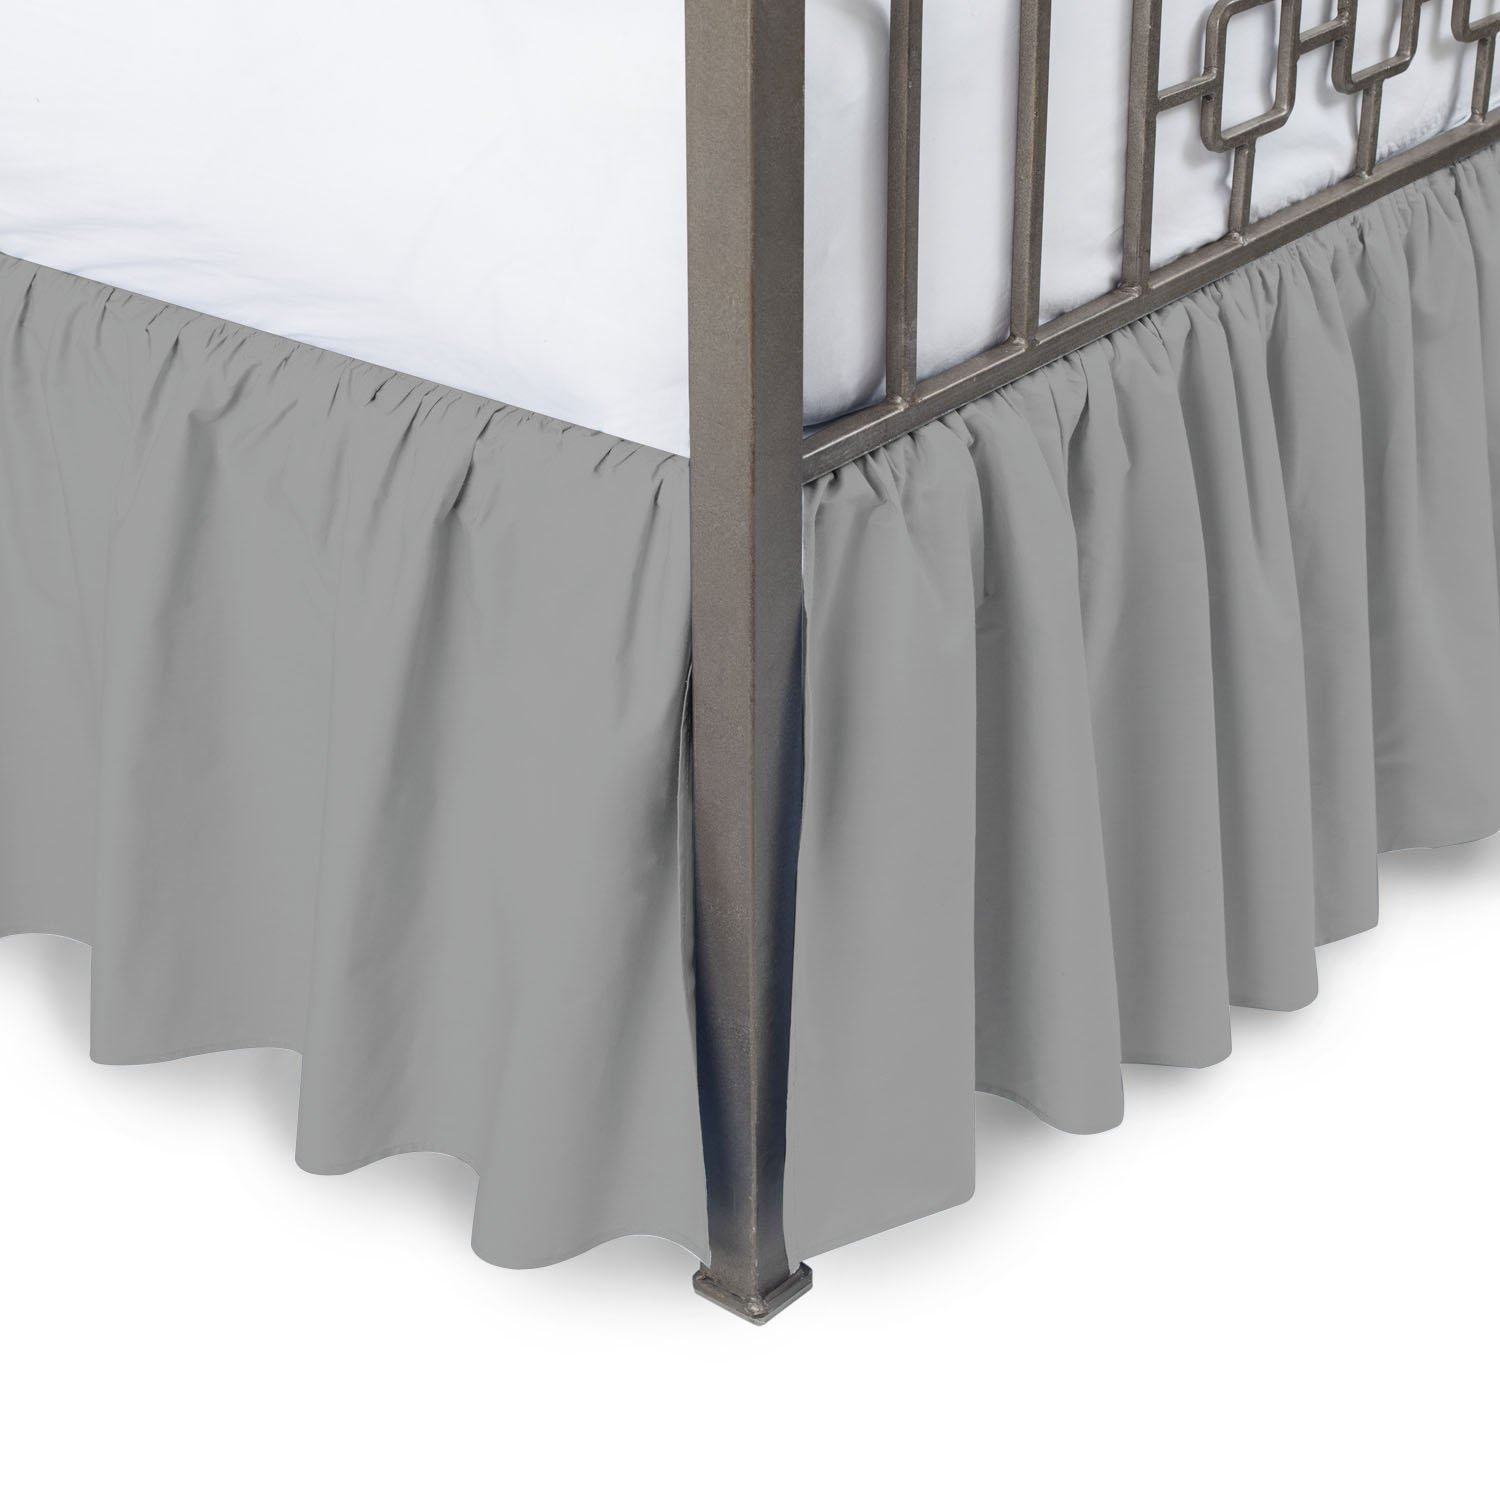 Vivacious Collection Hotel Quality 800TC Pure Cotton Dust Ruffle Bed Skirt 27'' Drop length 100% Egyptian Cotton Silver Grey Twin XL Size